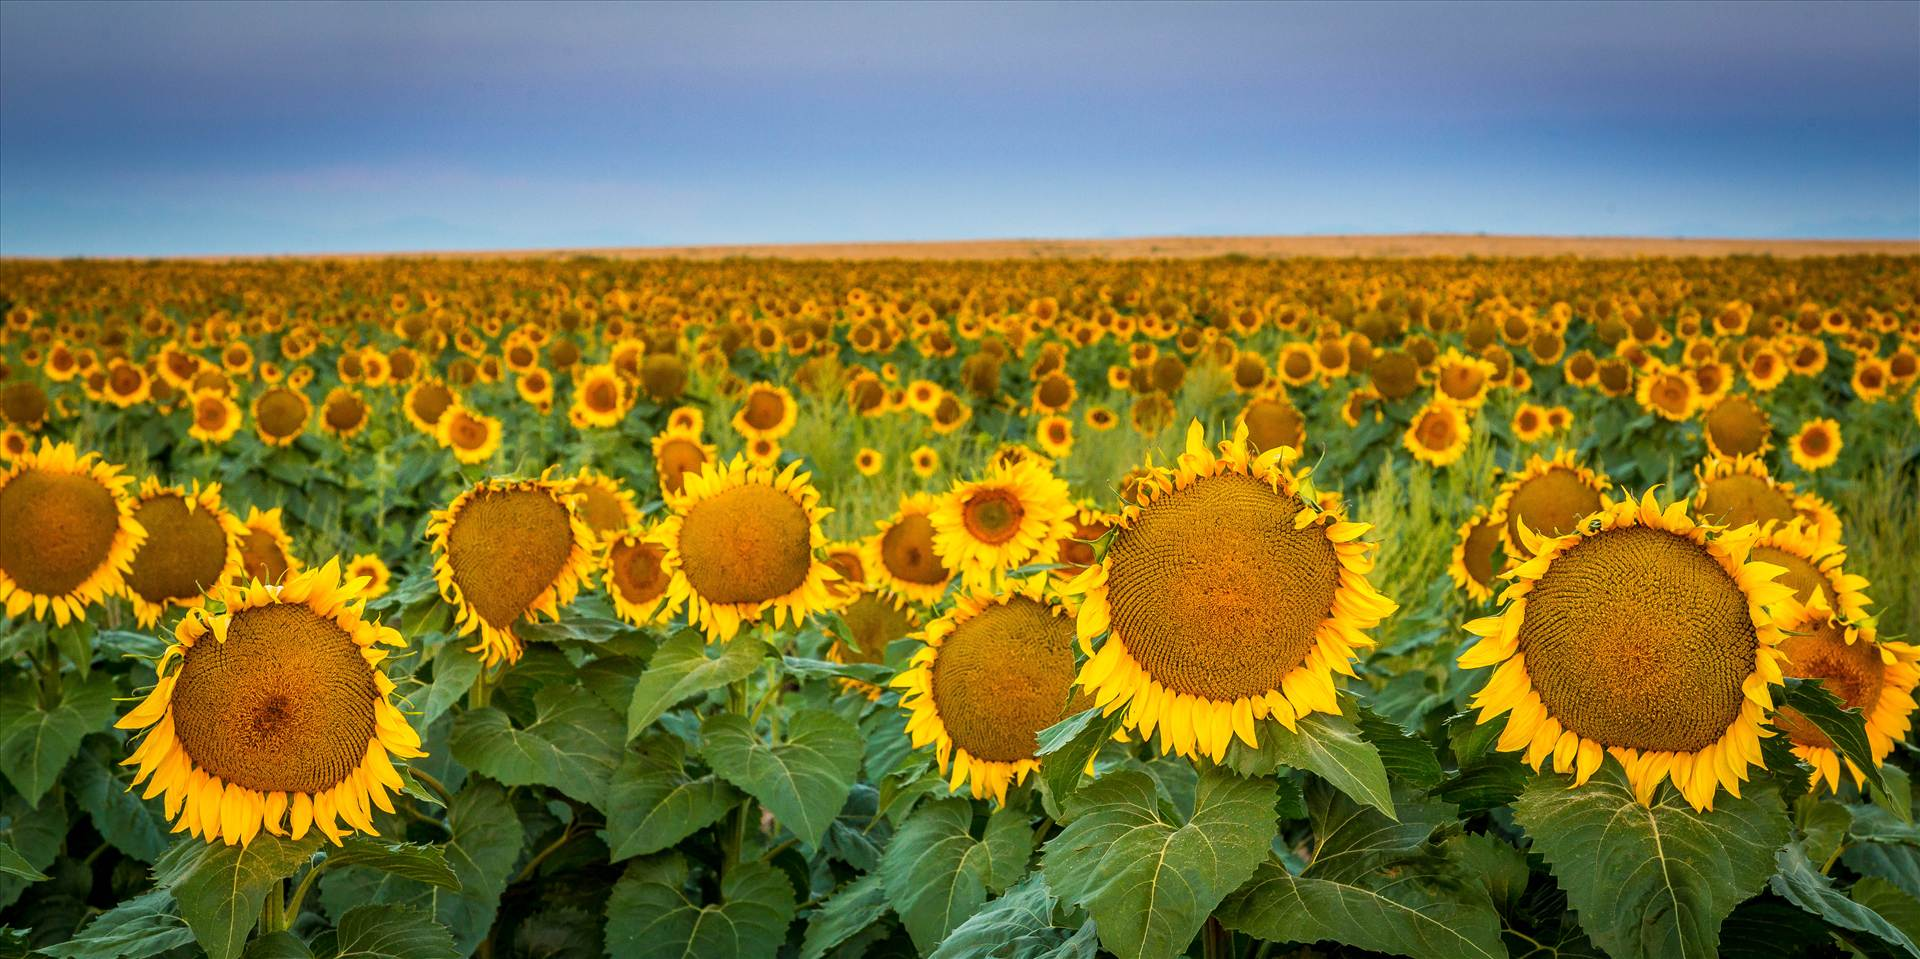 Sunflower Sunrise IV - Sunflower fields near Denver International Airport, Colorado. by D Scott Smith